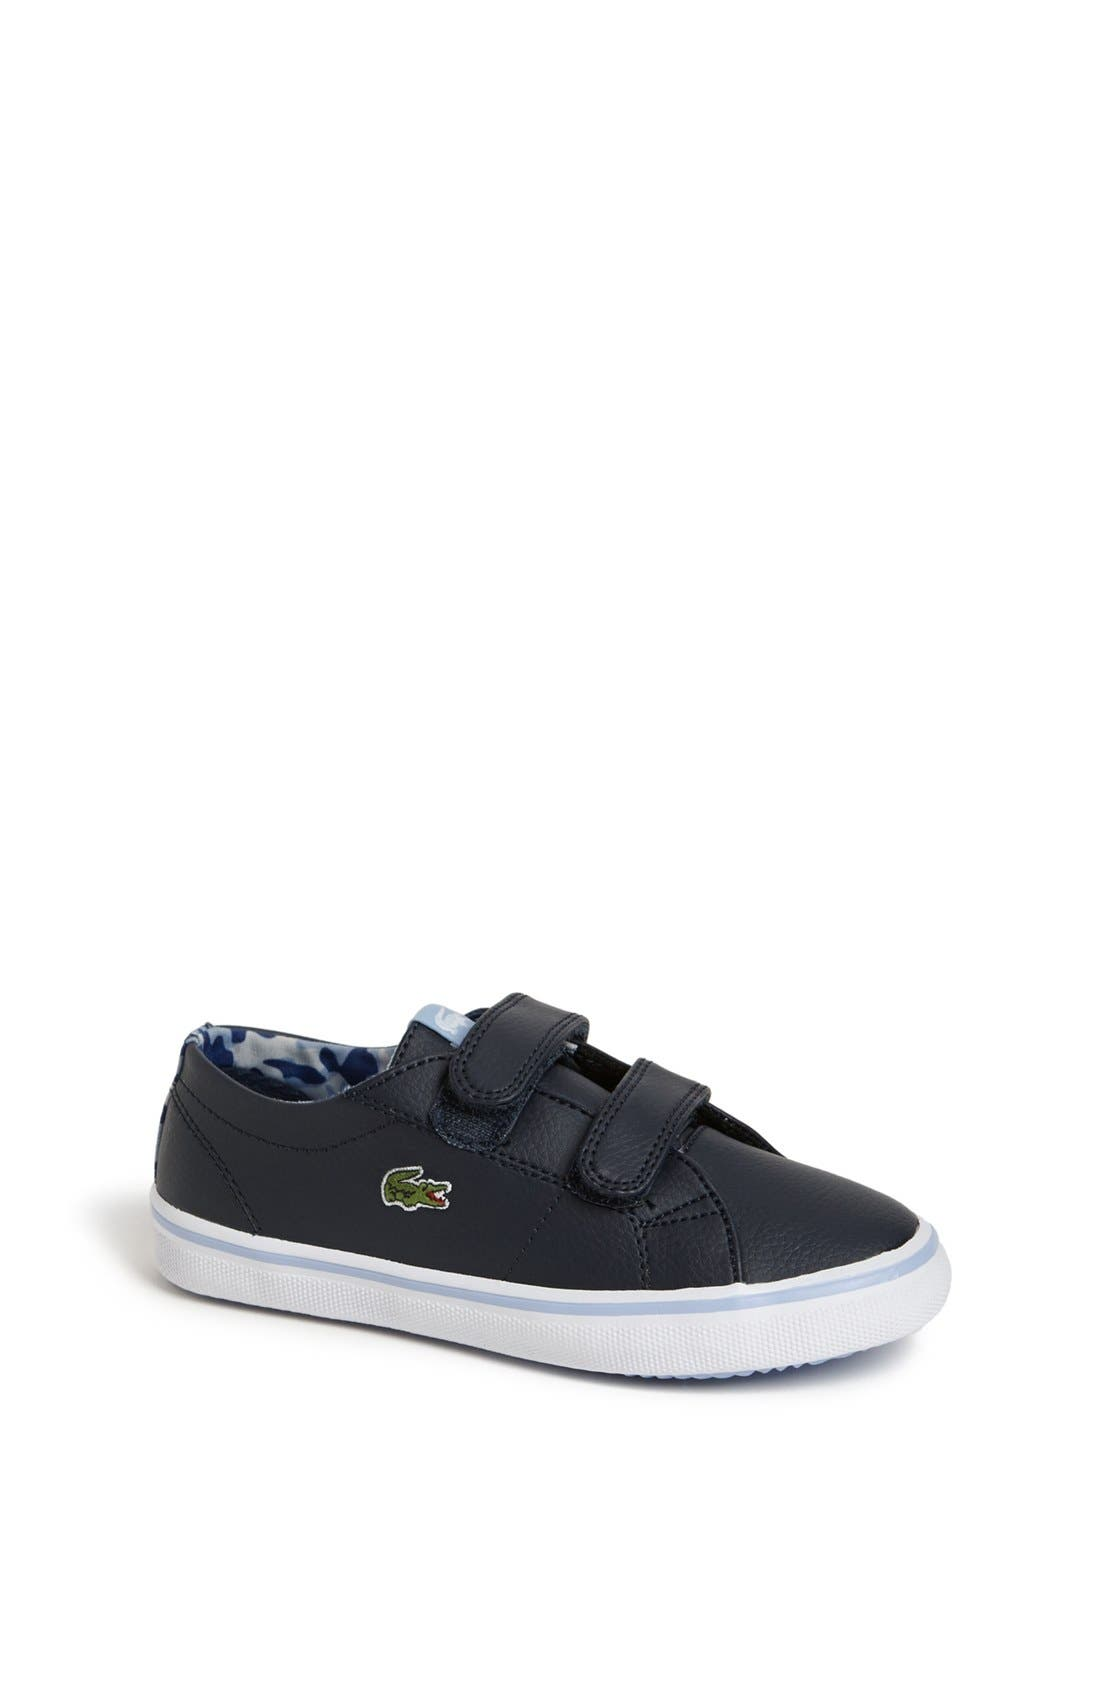 Main Image - Lacoste 'Marcel' Sneaker (Baby, Walker, Toddler & Little Kid)